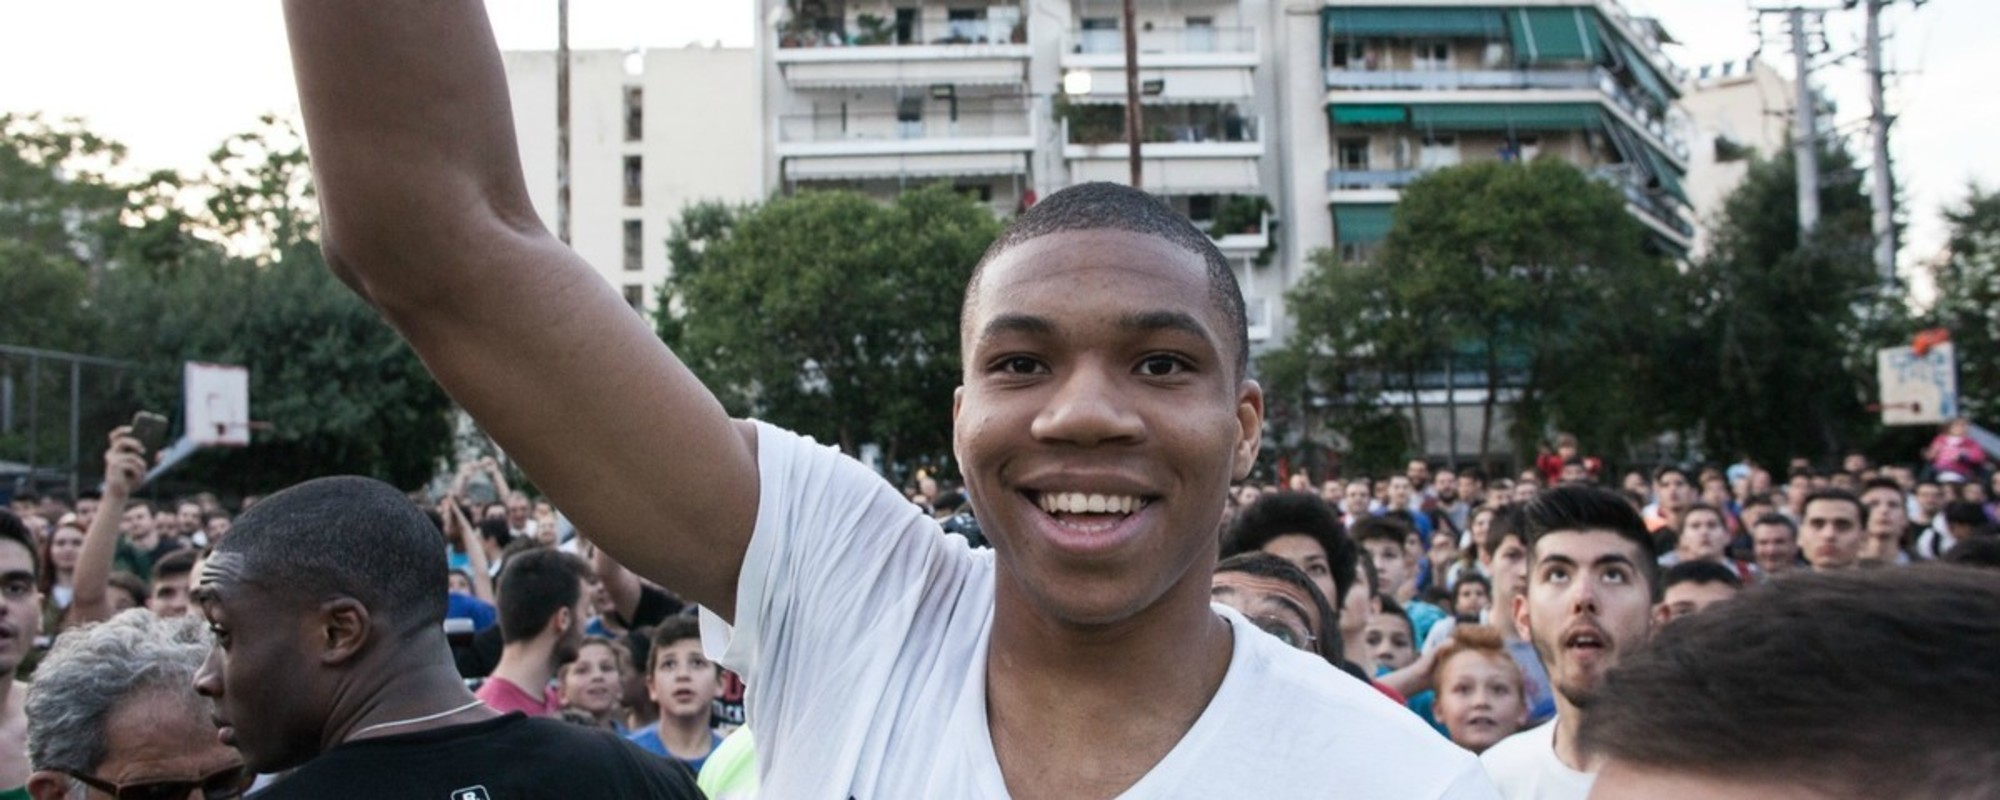 Athens Went Nuts for Its Returning NBA Star Giannis Antetokounmpo Last Week